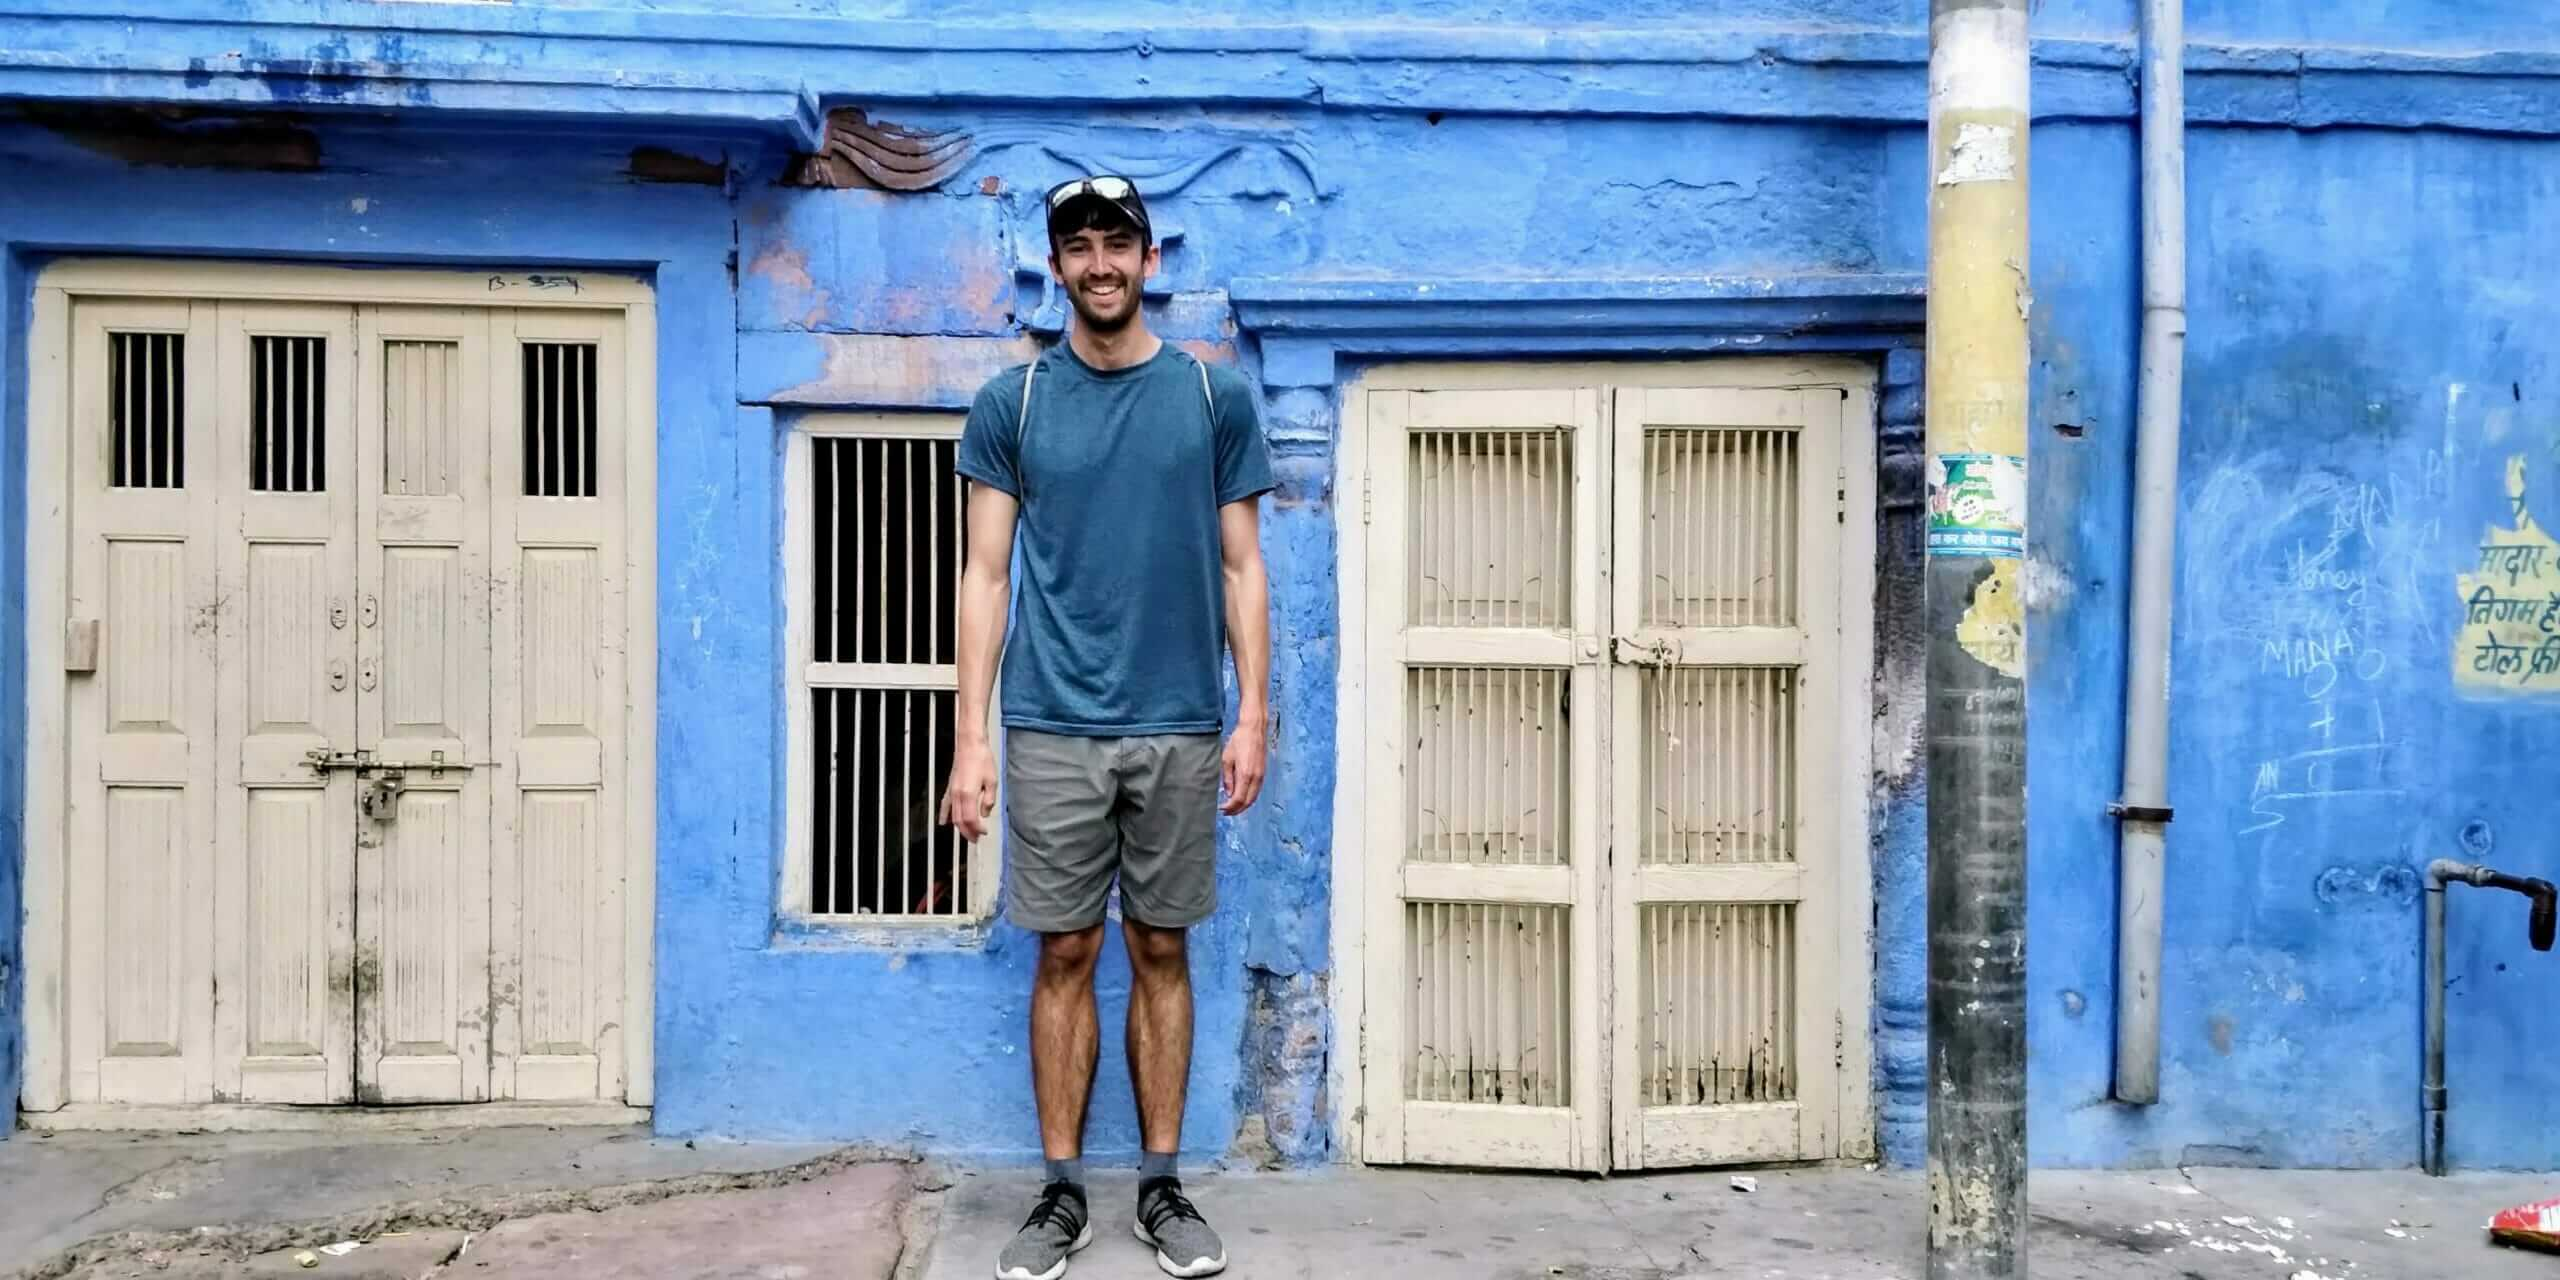 Blue building in Jodhpur with Tony wearing a blue shirt